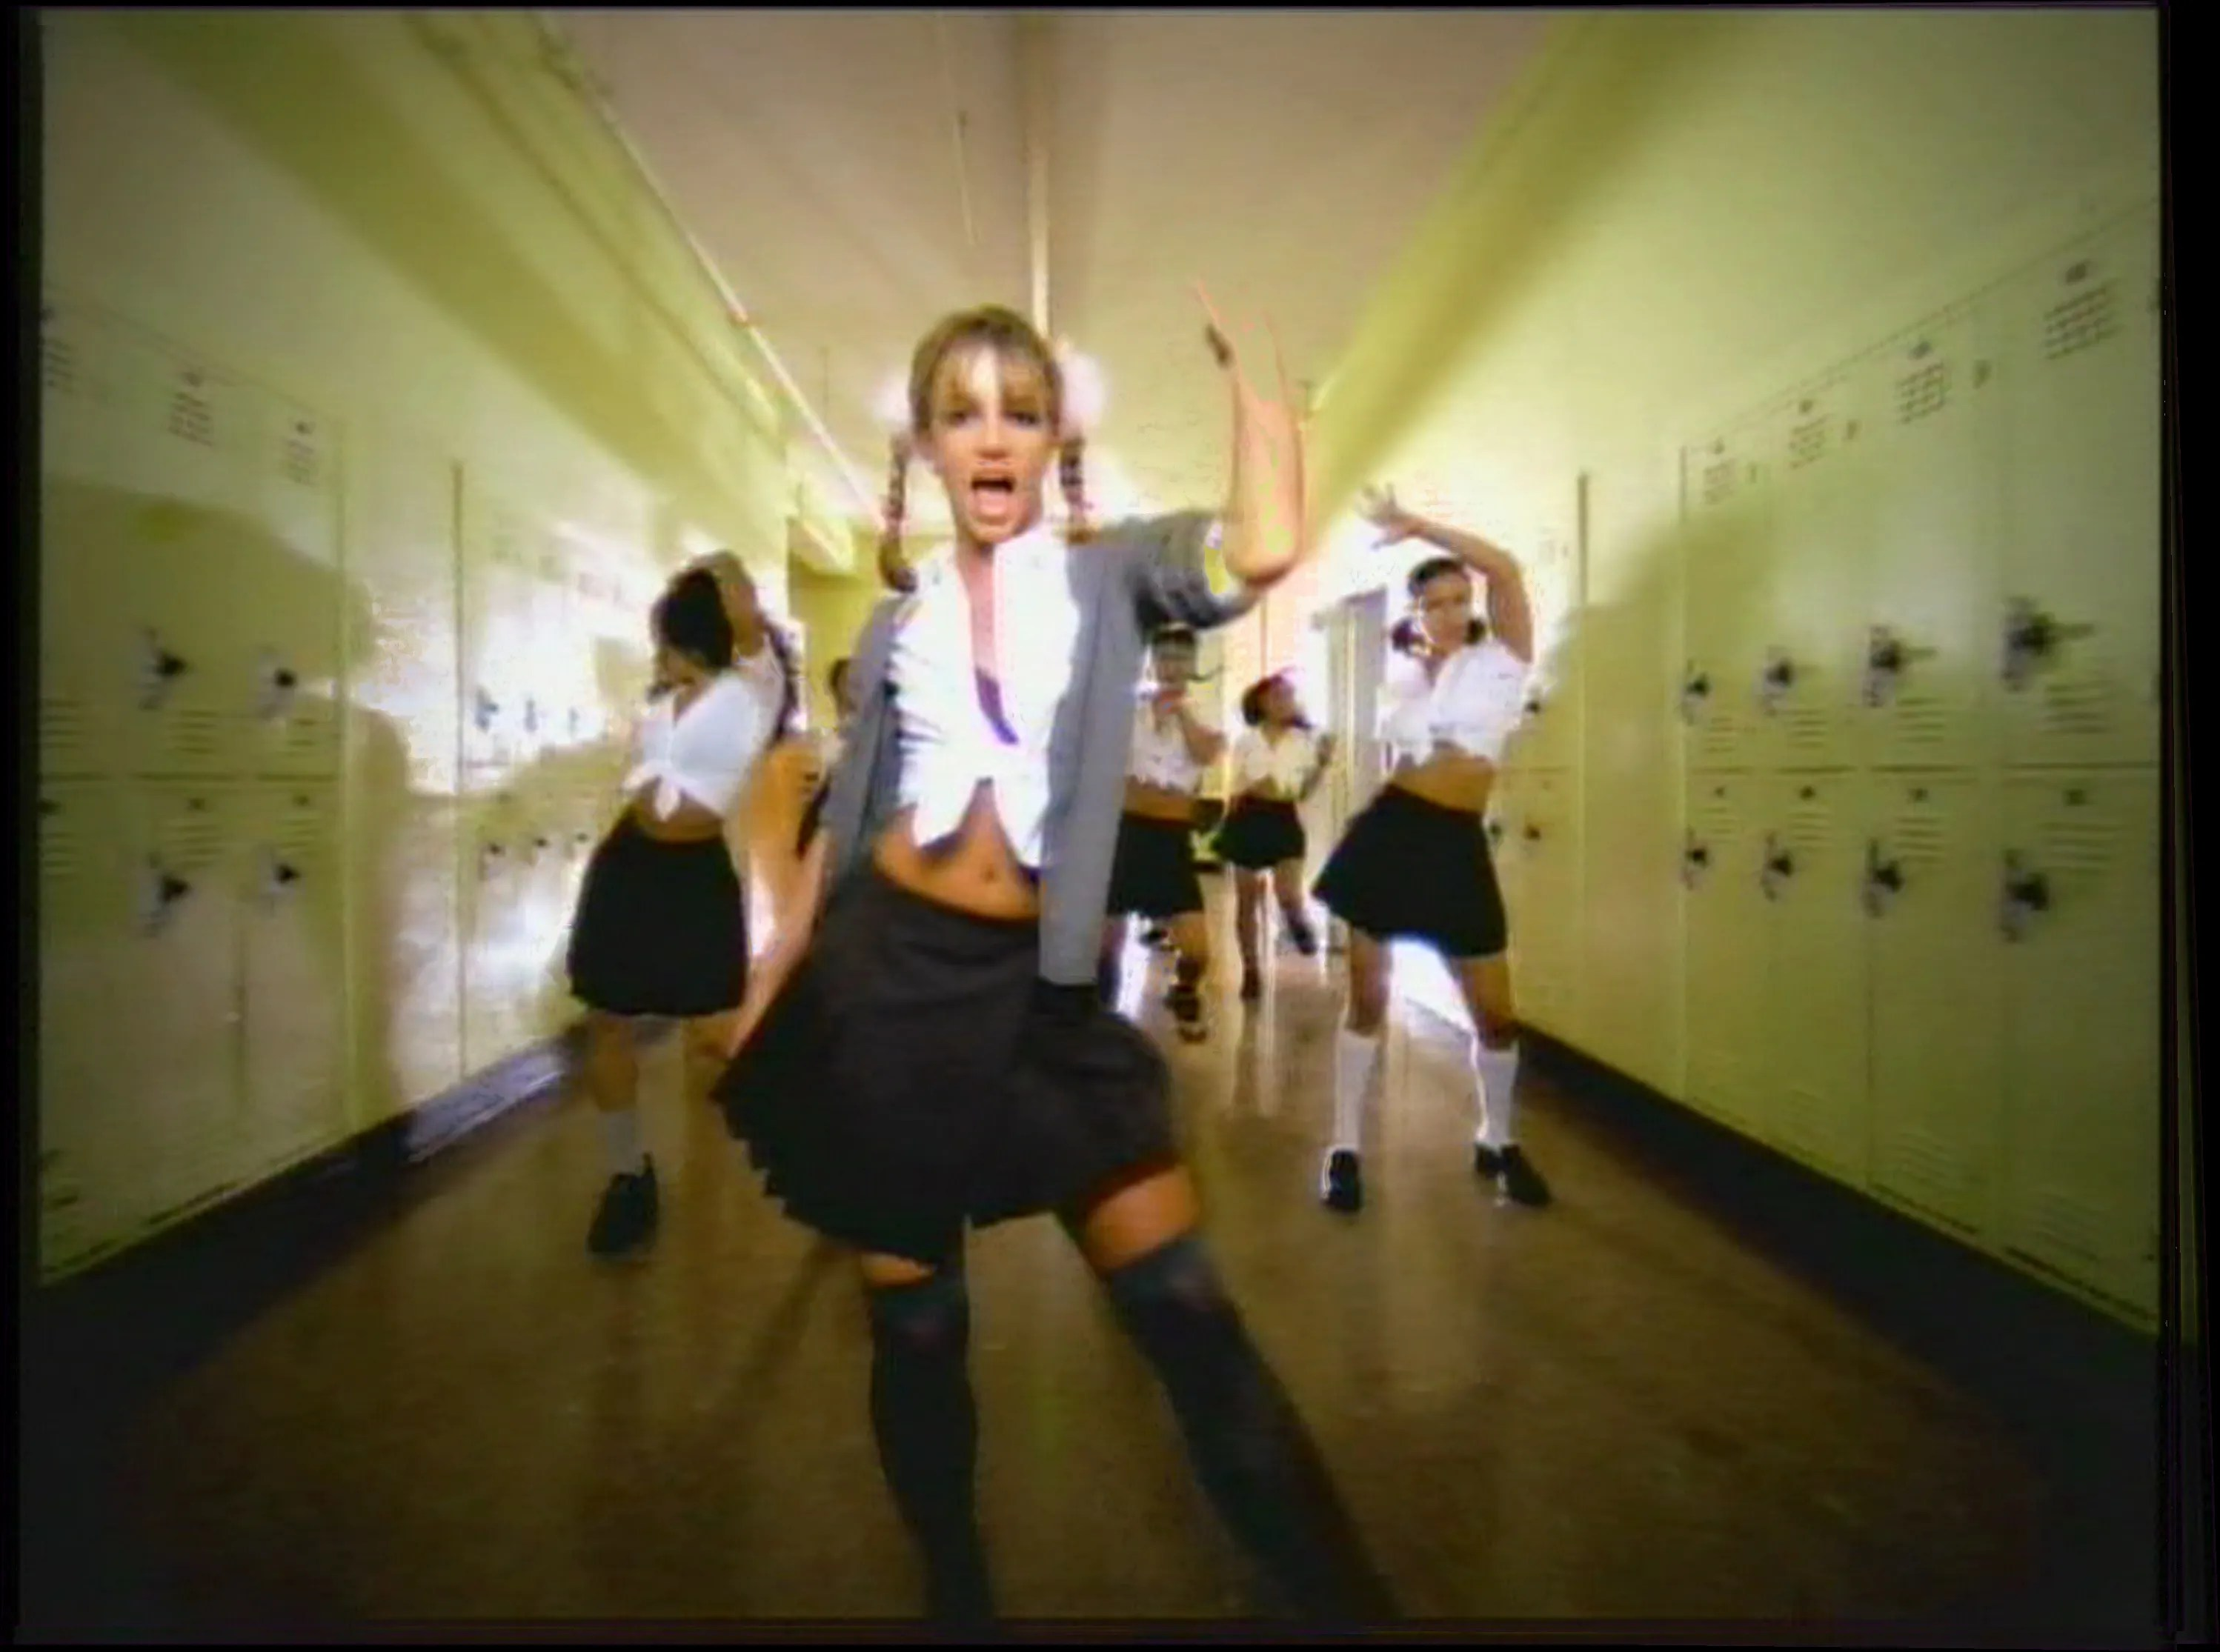 Britney Spears Hit Baby One More Time Turns 20